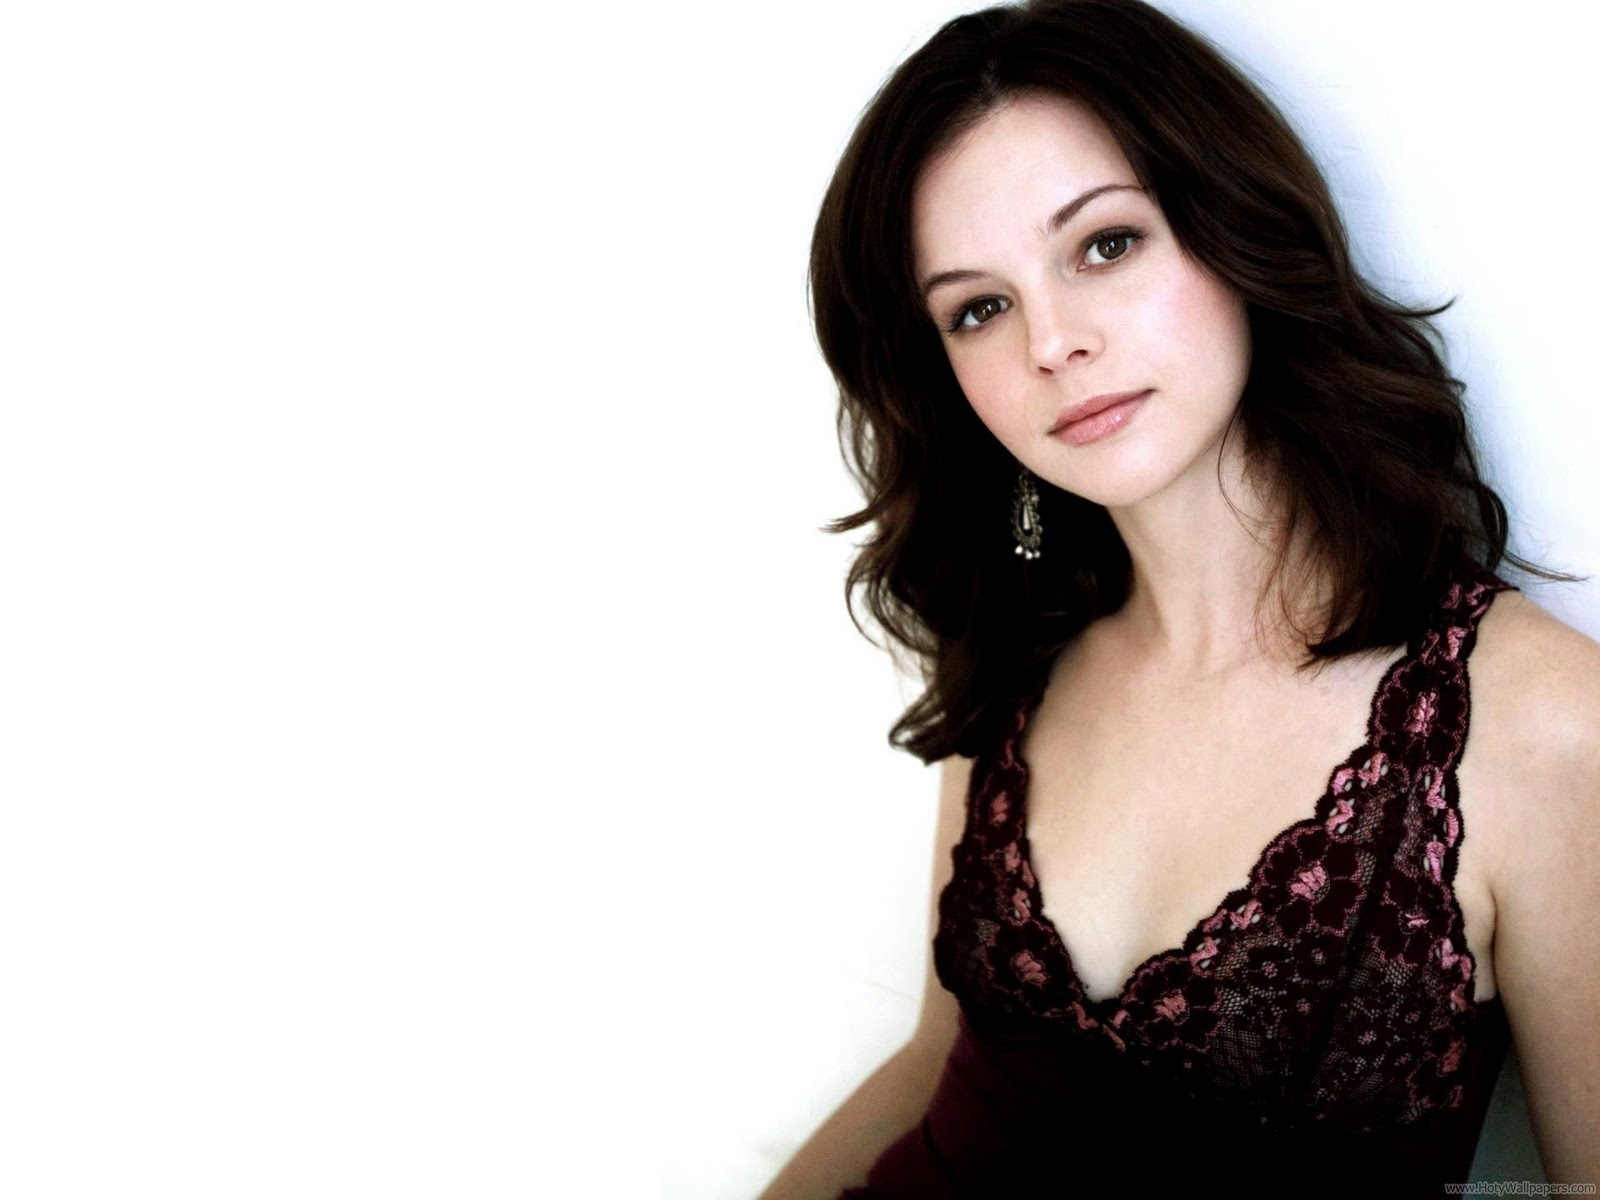 http://3.bp.blogspot.com/-pXCebobnJLU/Tvx693mVmeI/AAAAAAAABgM/IL9M6xYTDfk/s1600/hollywood_actress_amber_tamblyn_desktop_wallpaper-1440x1280-07.jpg